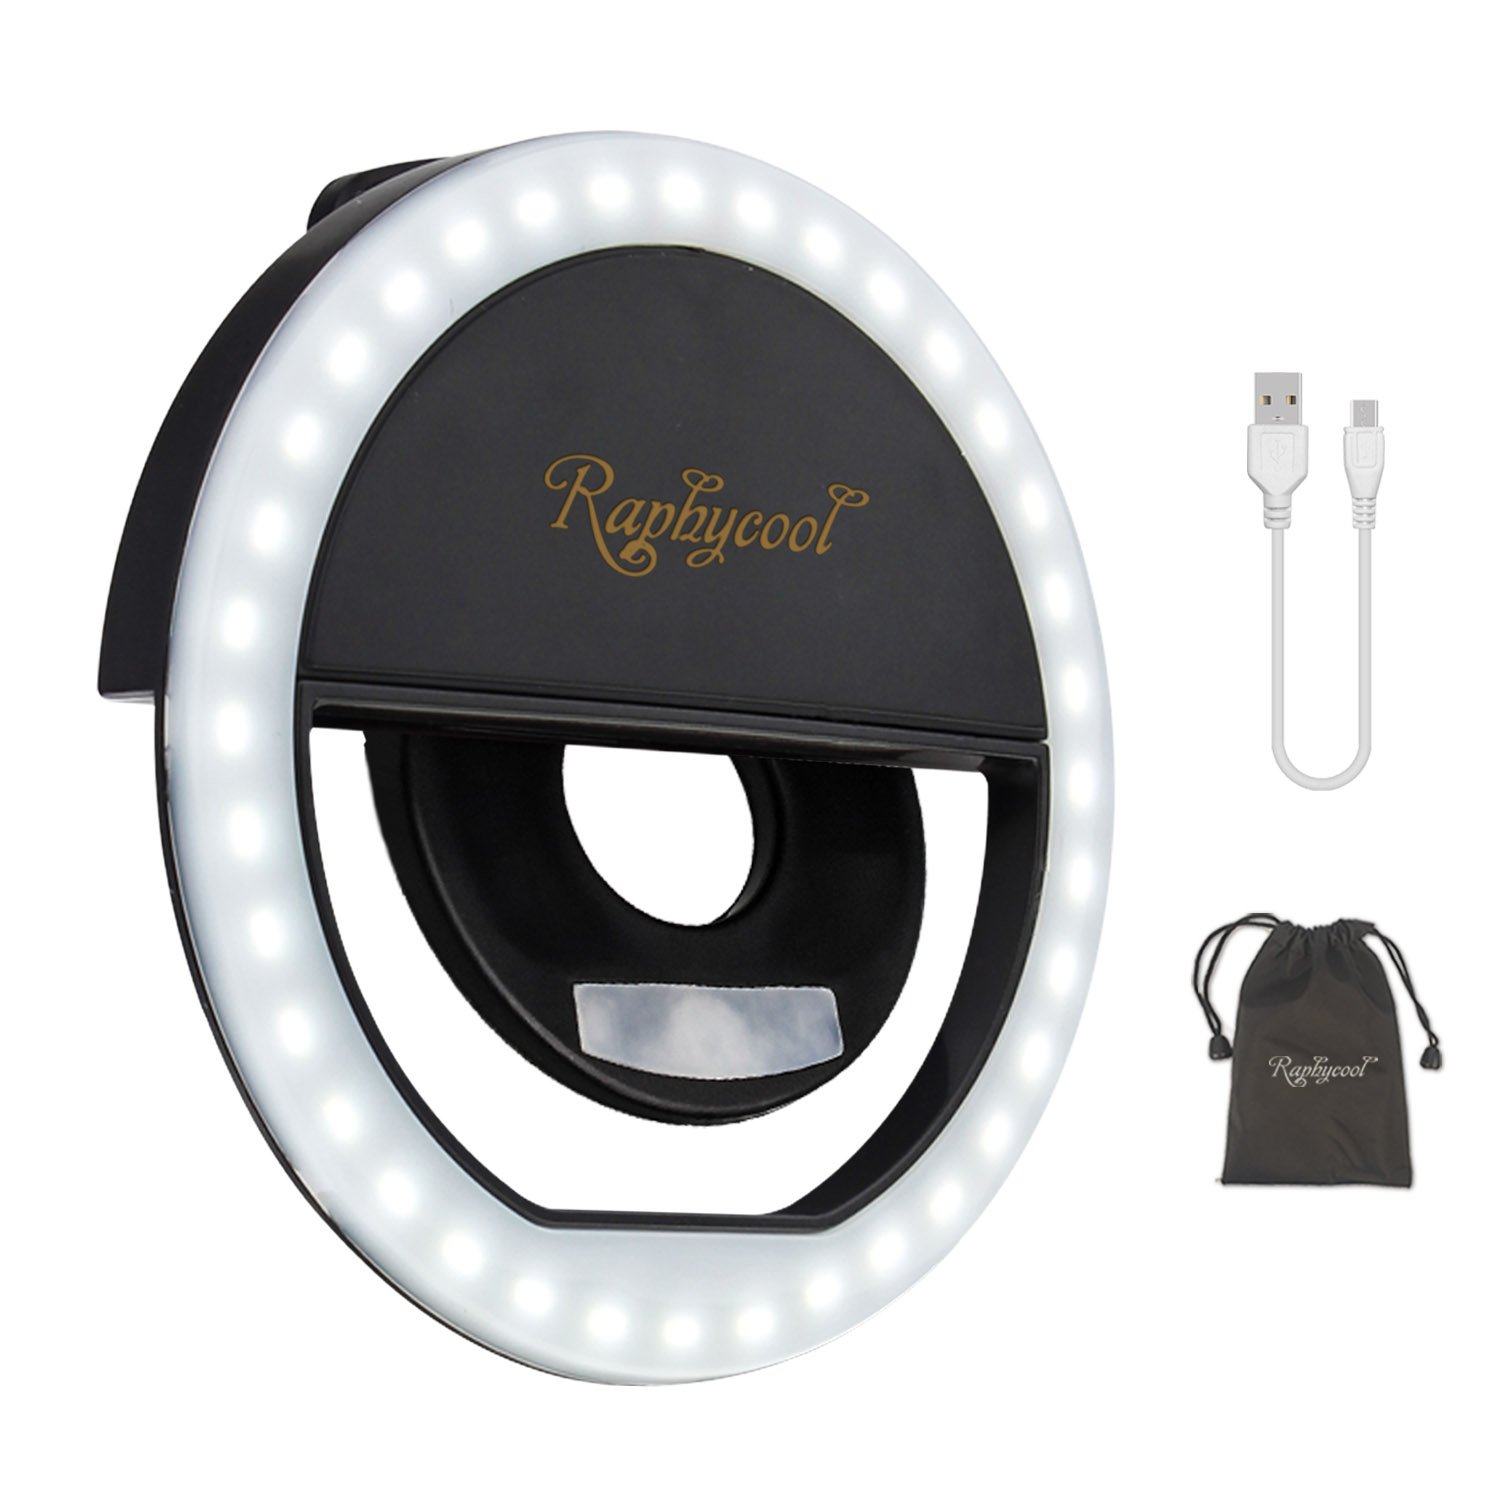 Selfie Light, RC Selfie Ring Light for iPhone, Rechargeable Ring Light for Phone, Circle Light Clip on iPhone Sansung Galaxy HuaWei iPad Photography Camera Video, Black